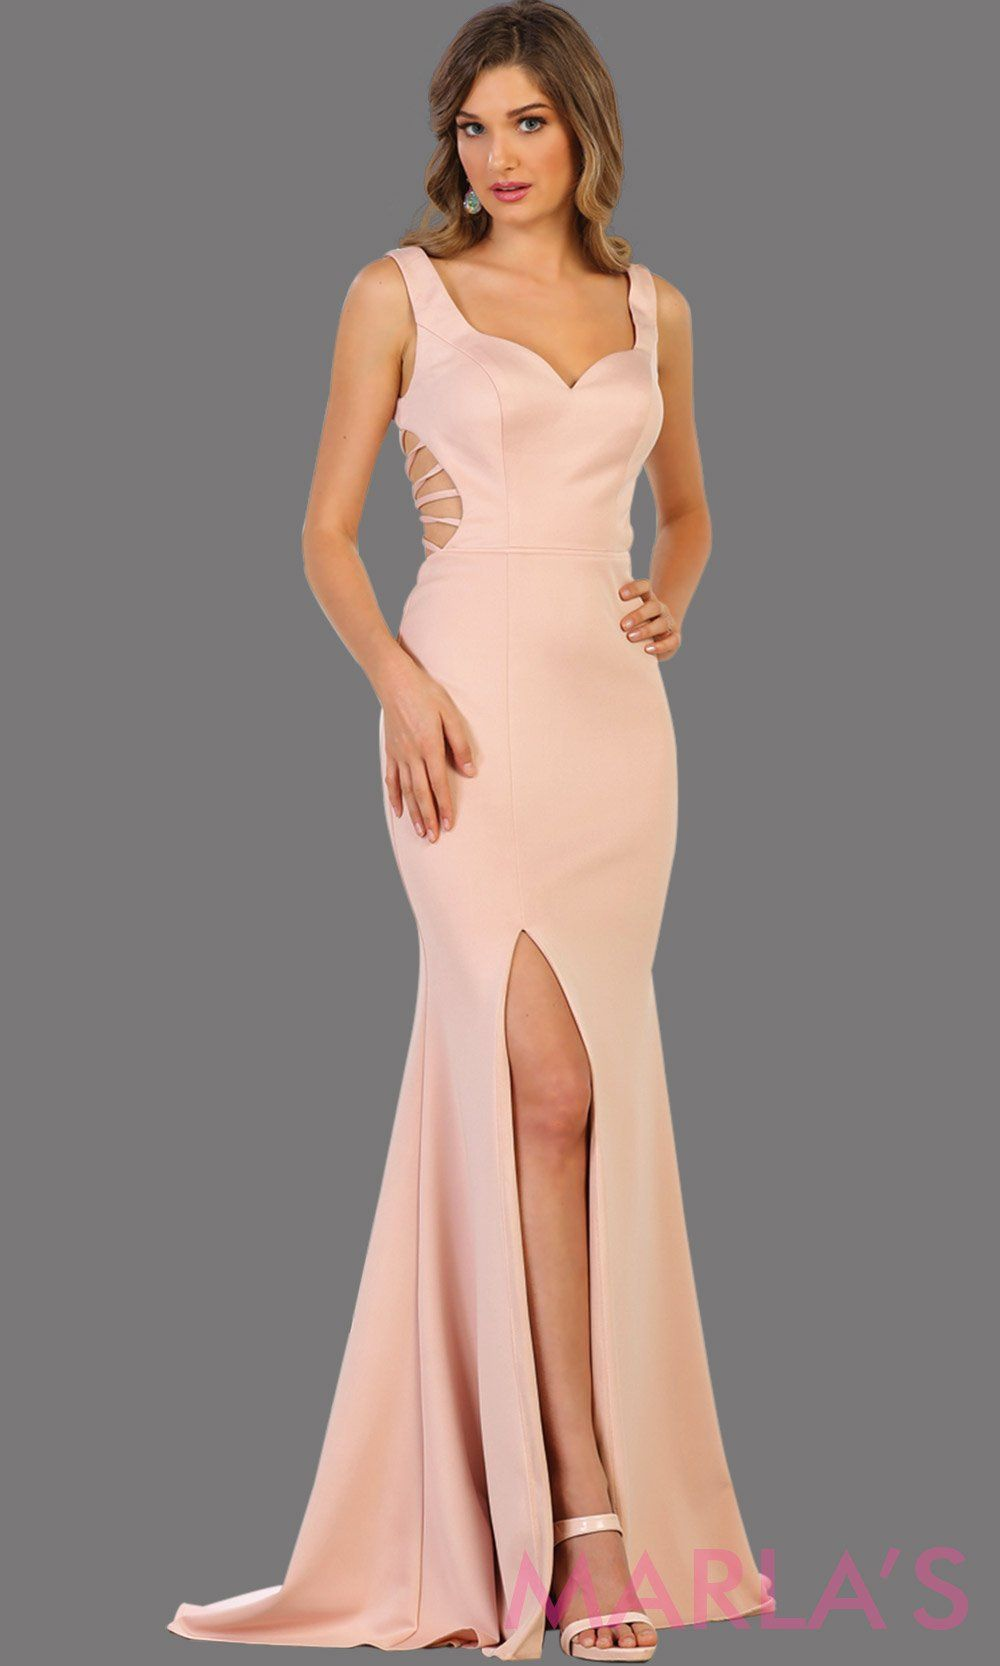 Long dusty rose fitted dress with open back and high slit. This sleek and sexy dress is perfect for prom, sexy wedding guest dress, gala event. This pink gown has a low back and leg slit with v neckline.